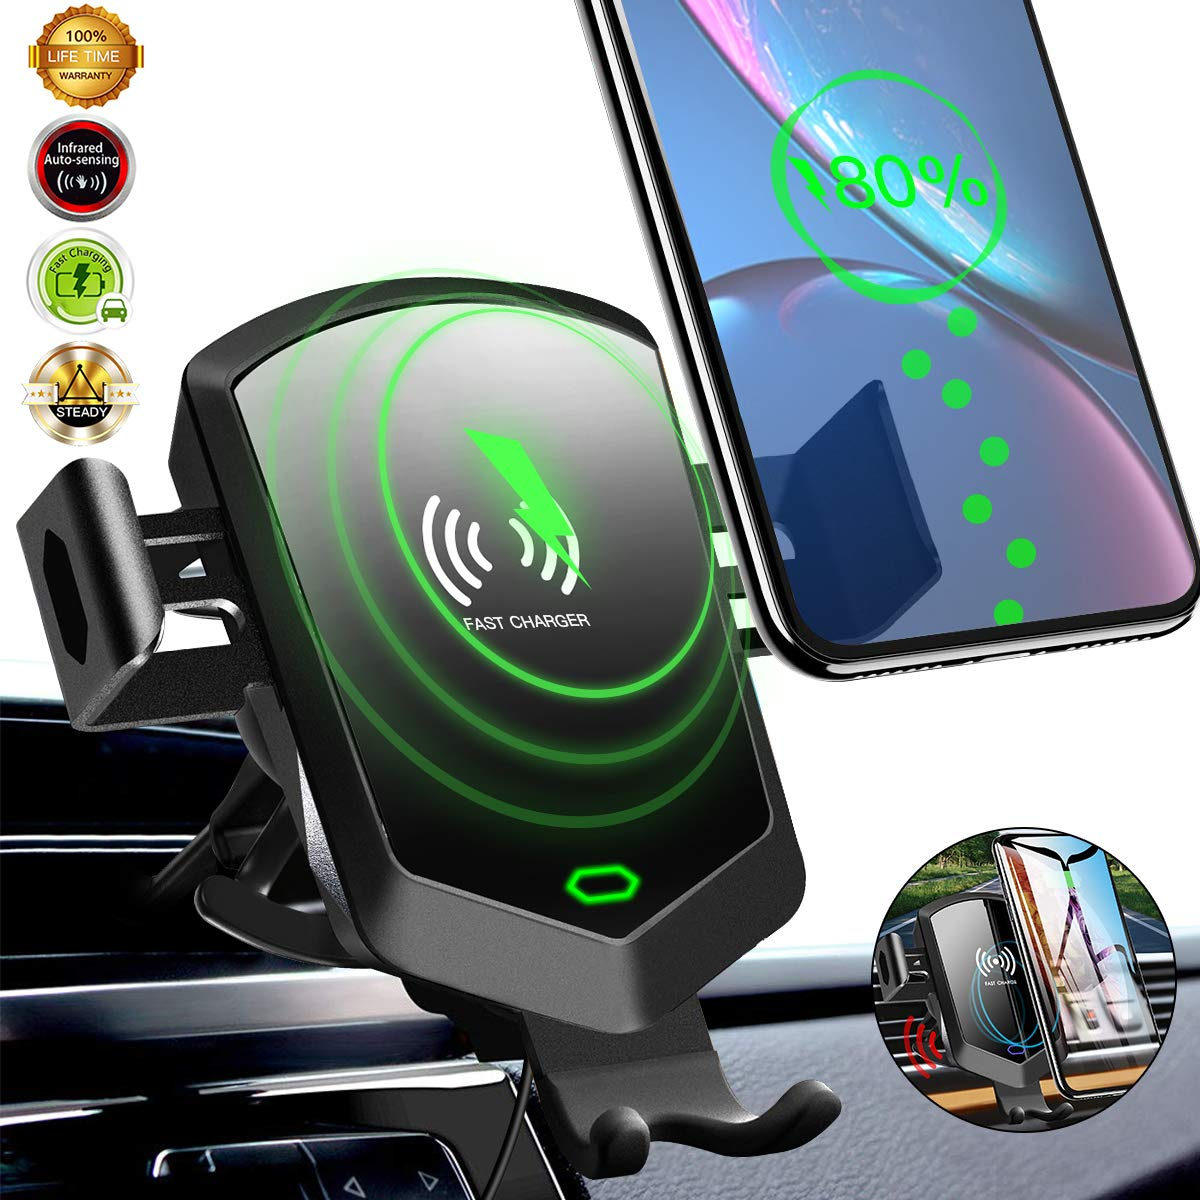 Wireless Car Charger Mount, Air Vent Phone Holder for Car,[10W Fast Charging][Auto Clamping] Car Phone Mount Fits for iPhone Xs/Xs Max/XR/8 Plus,Samsung Galaxy S10/S10+ S9/S8,and All Qi-Enable Devices